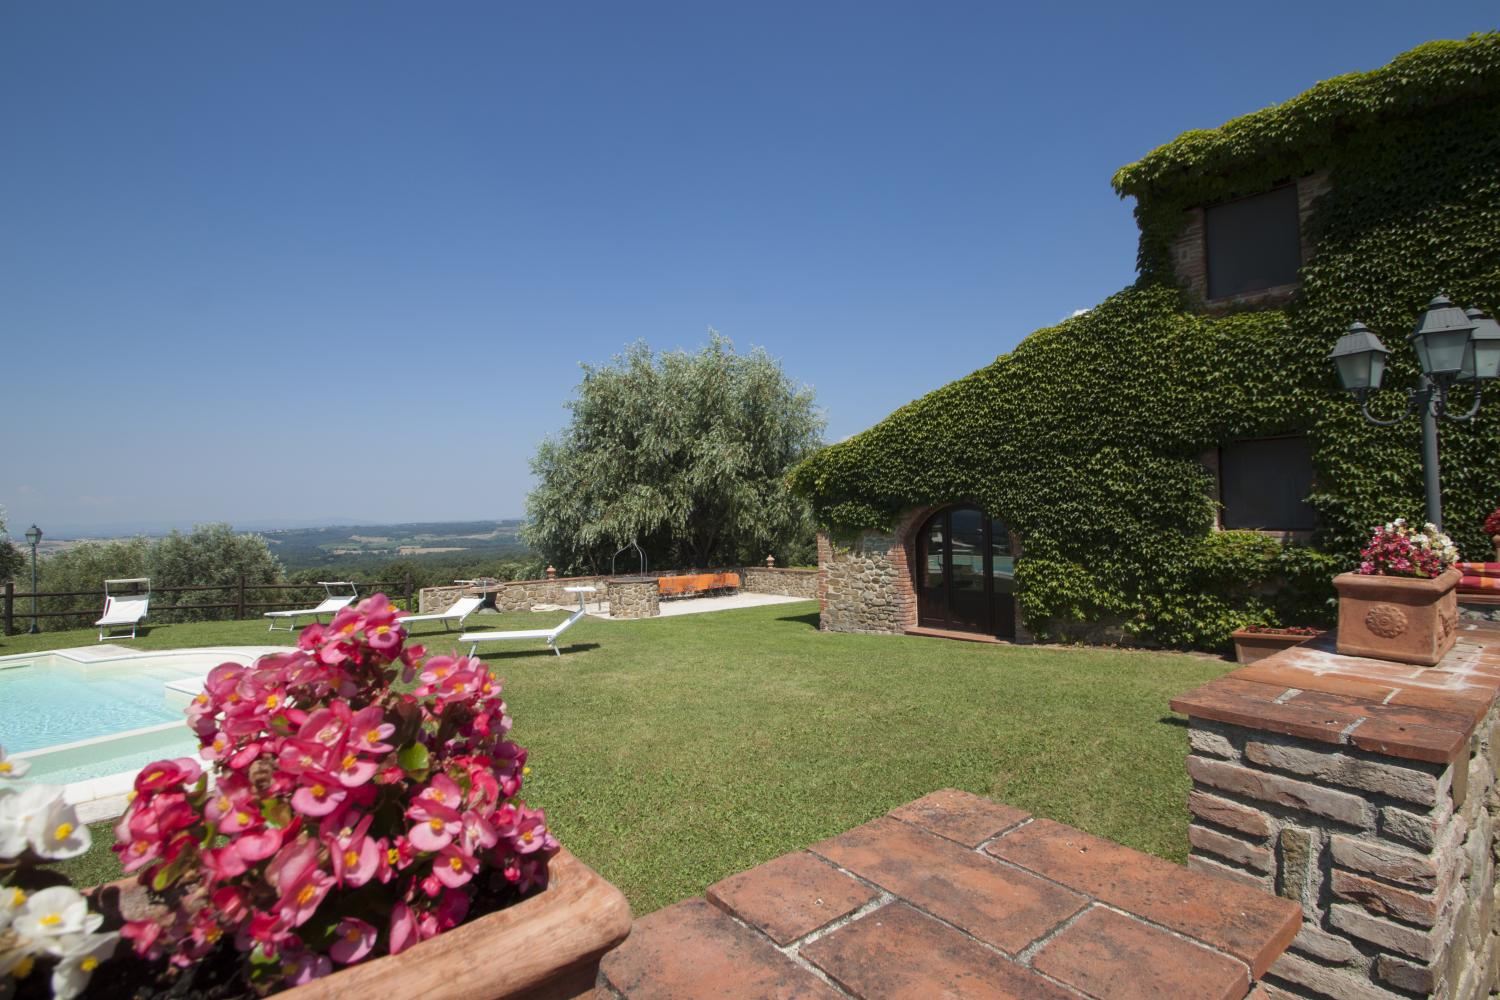 Villa exterior and pool, Casolare Toscano, Tuscany, La Turbie.